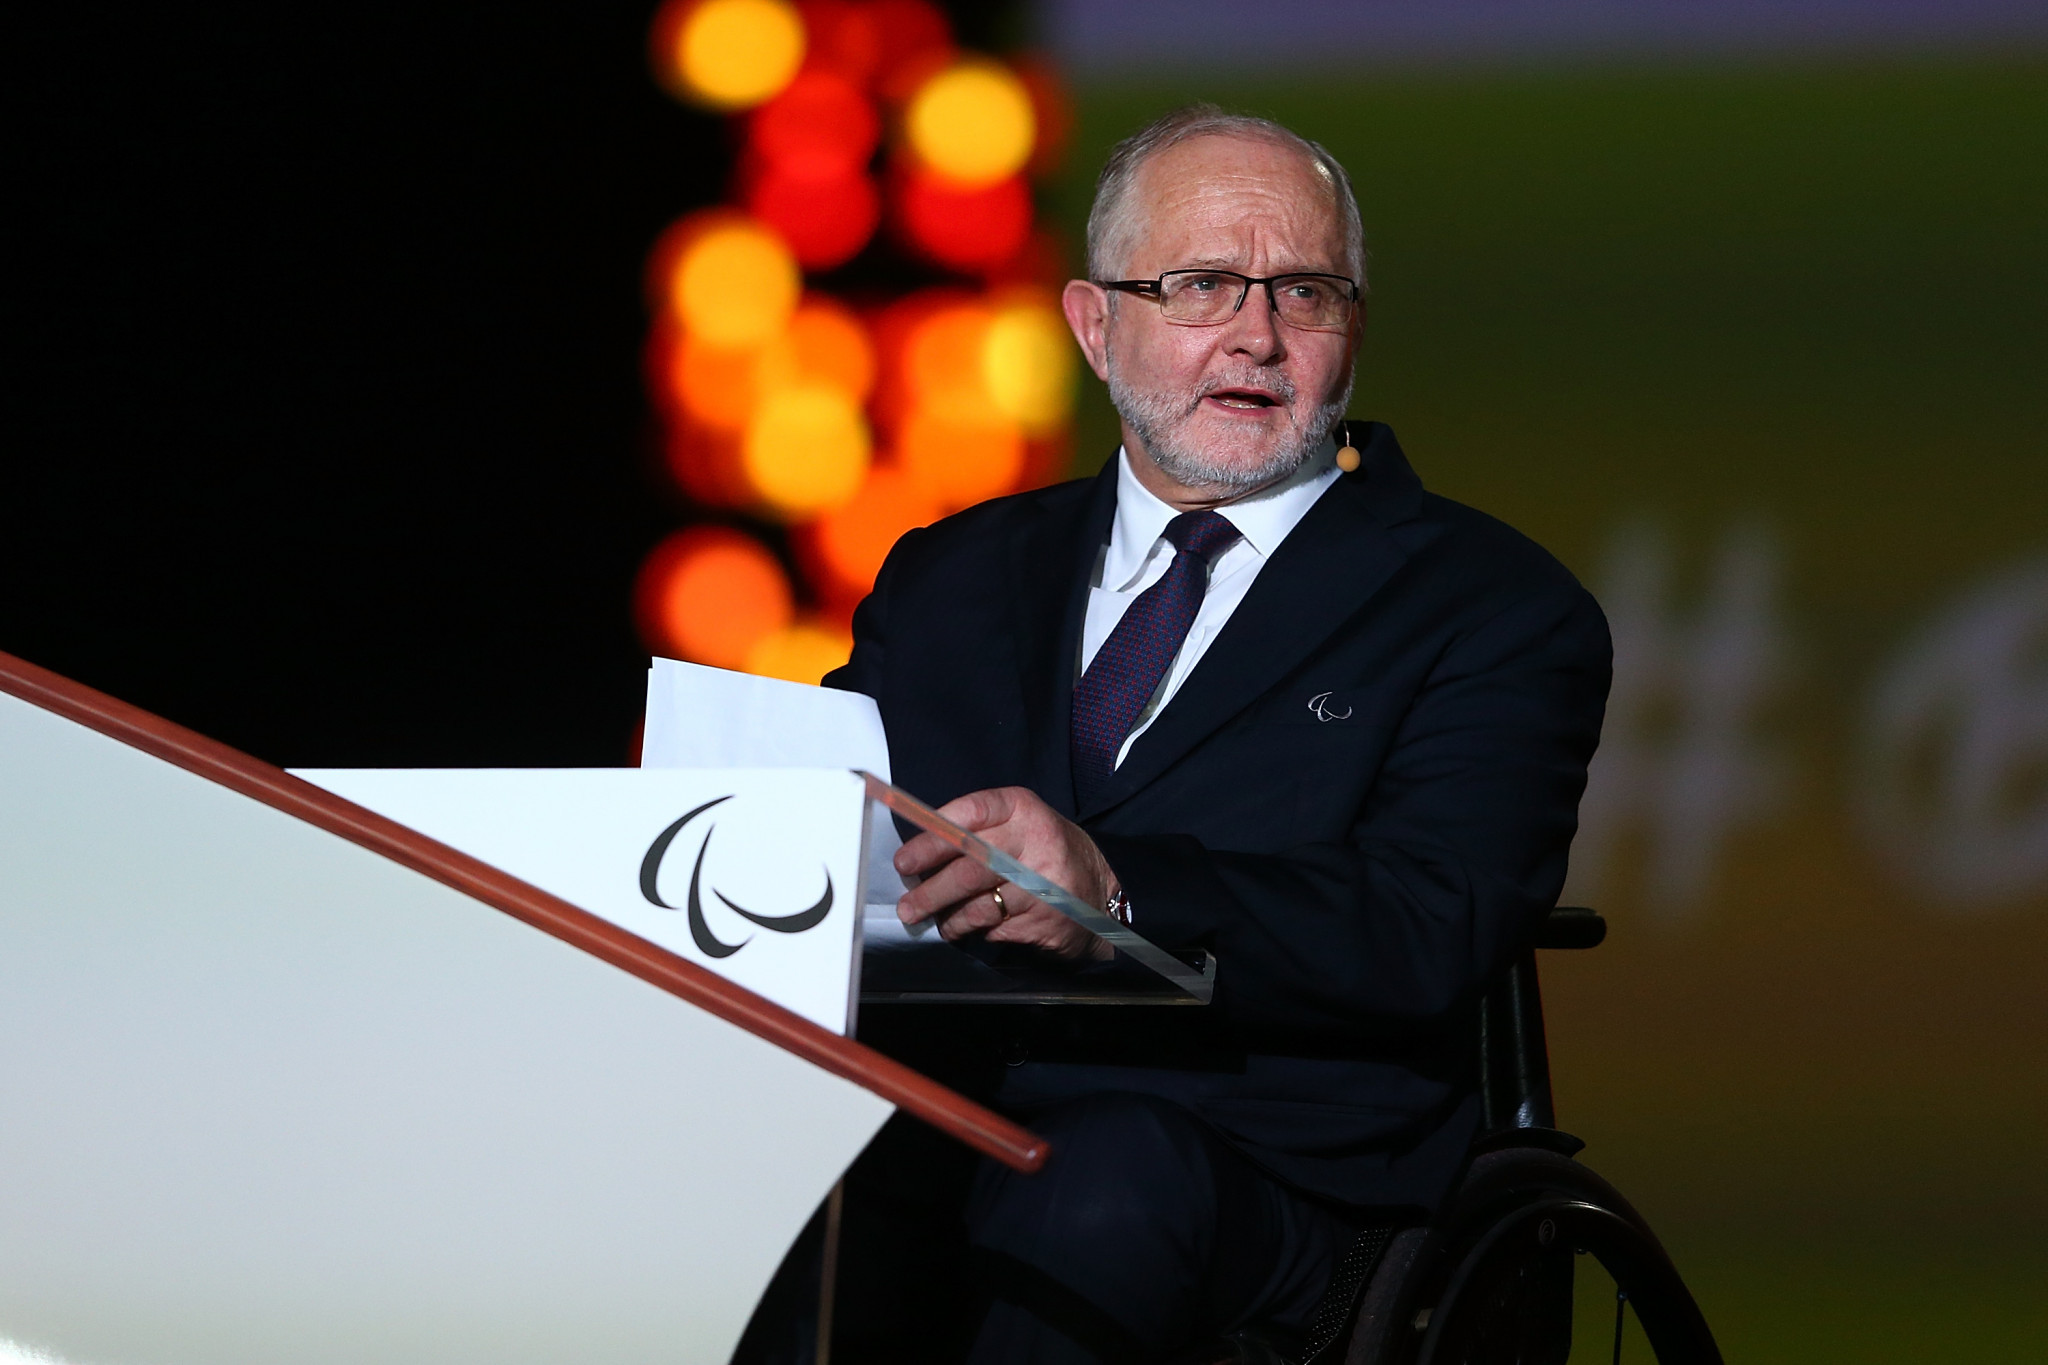 Sir Philip Craven has looked back at his years at the helm of the International Paralympic Committee. The new President will be elected at the Assembly in Abu Dhabi on September 8 ©Getty Images